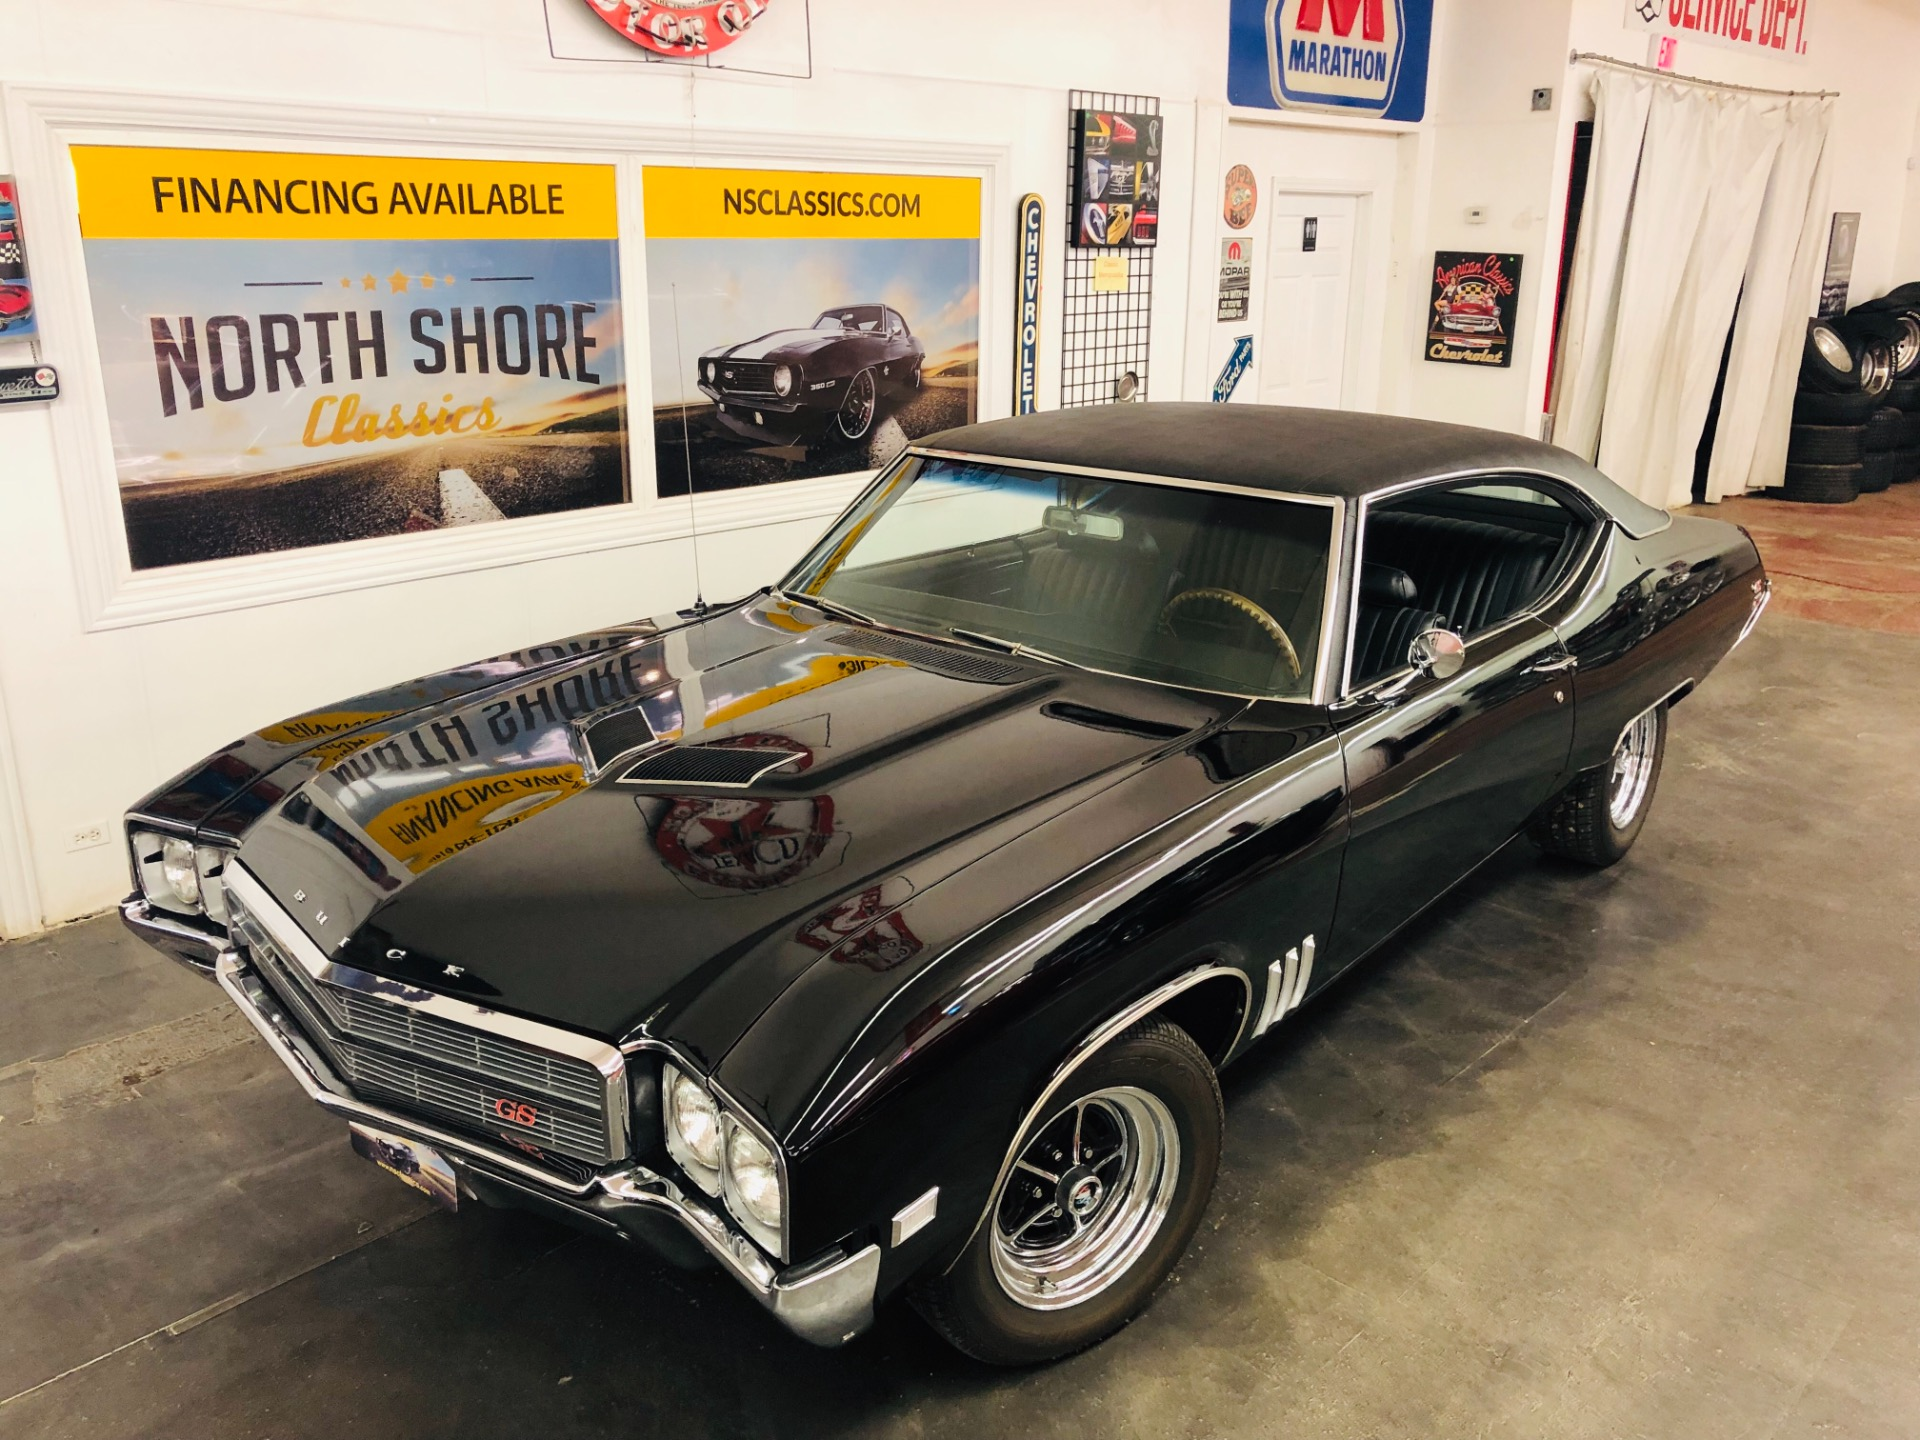 Photo 1969 Buick Skylark - GS STAGE ONE TRIBUTE - FRAME OFF RESTORED - MIRROR FINISH BLACK - SEE VID